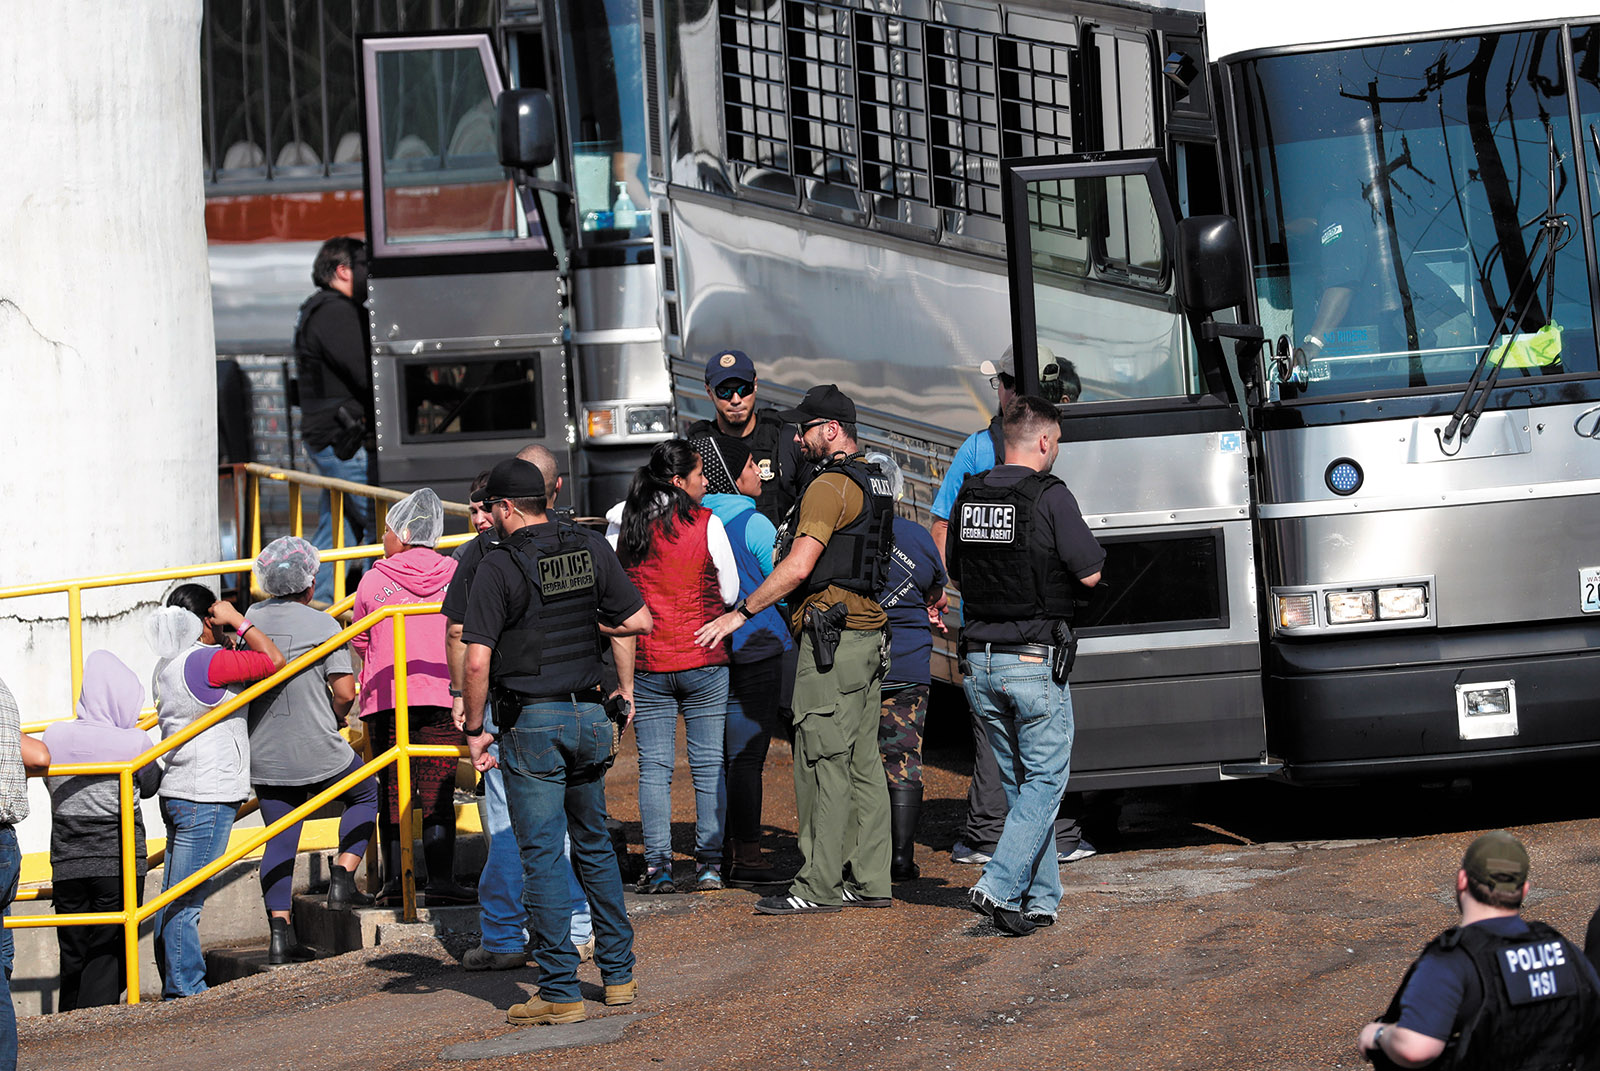 Workers from a Koch Foods plant being taken away by ICE agents during a raid, Morton, Mississippi